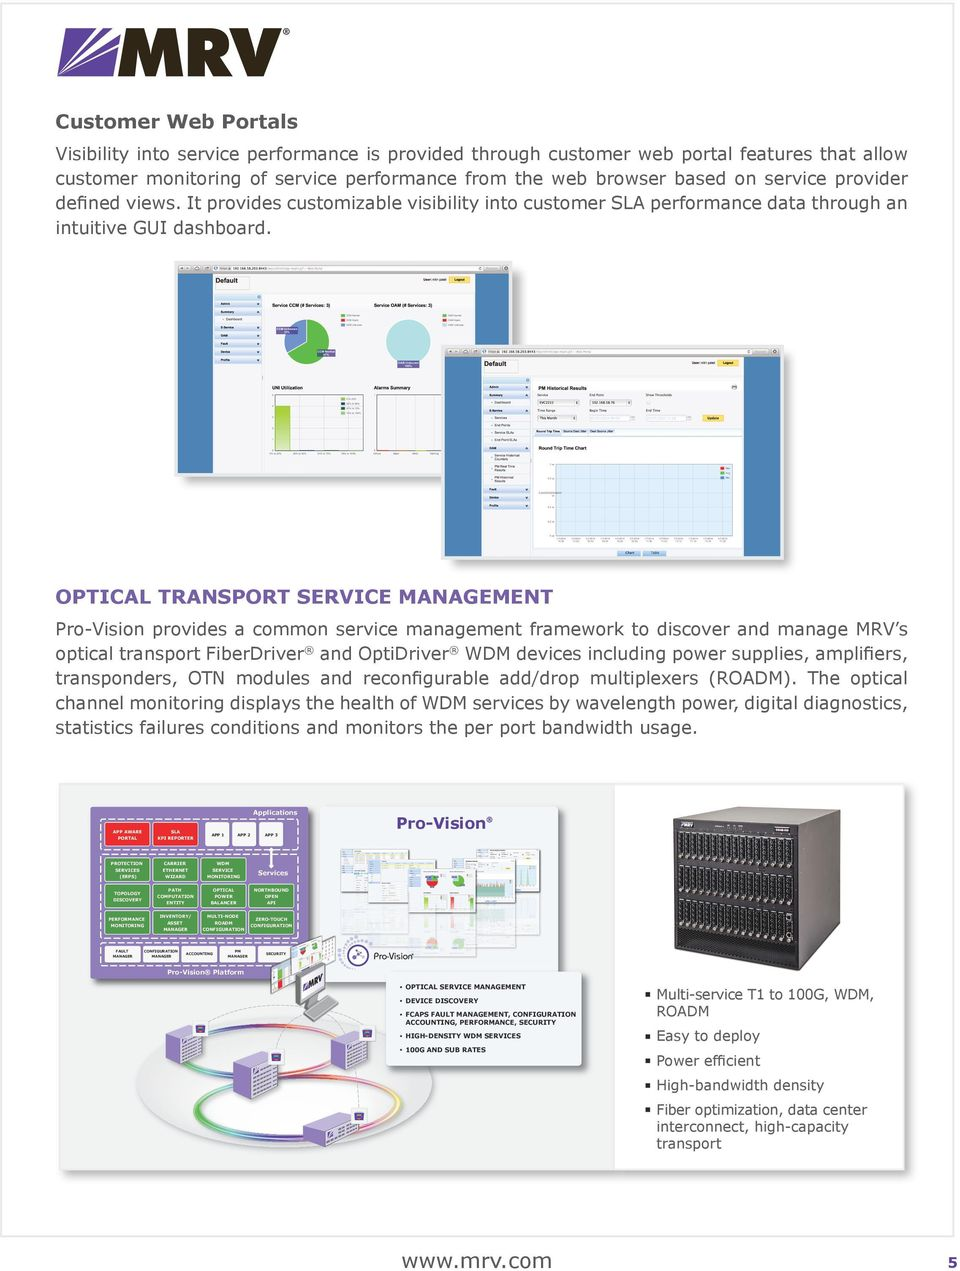 OPTICAL TRANSPORT SERVICE MANAGEMENT Pro-Vision provides a common service management framework to discover and manage MRV s optical transport FiberDriver and OptiDriver WDM devices including power